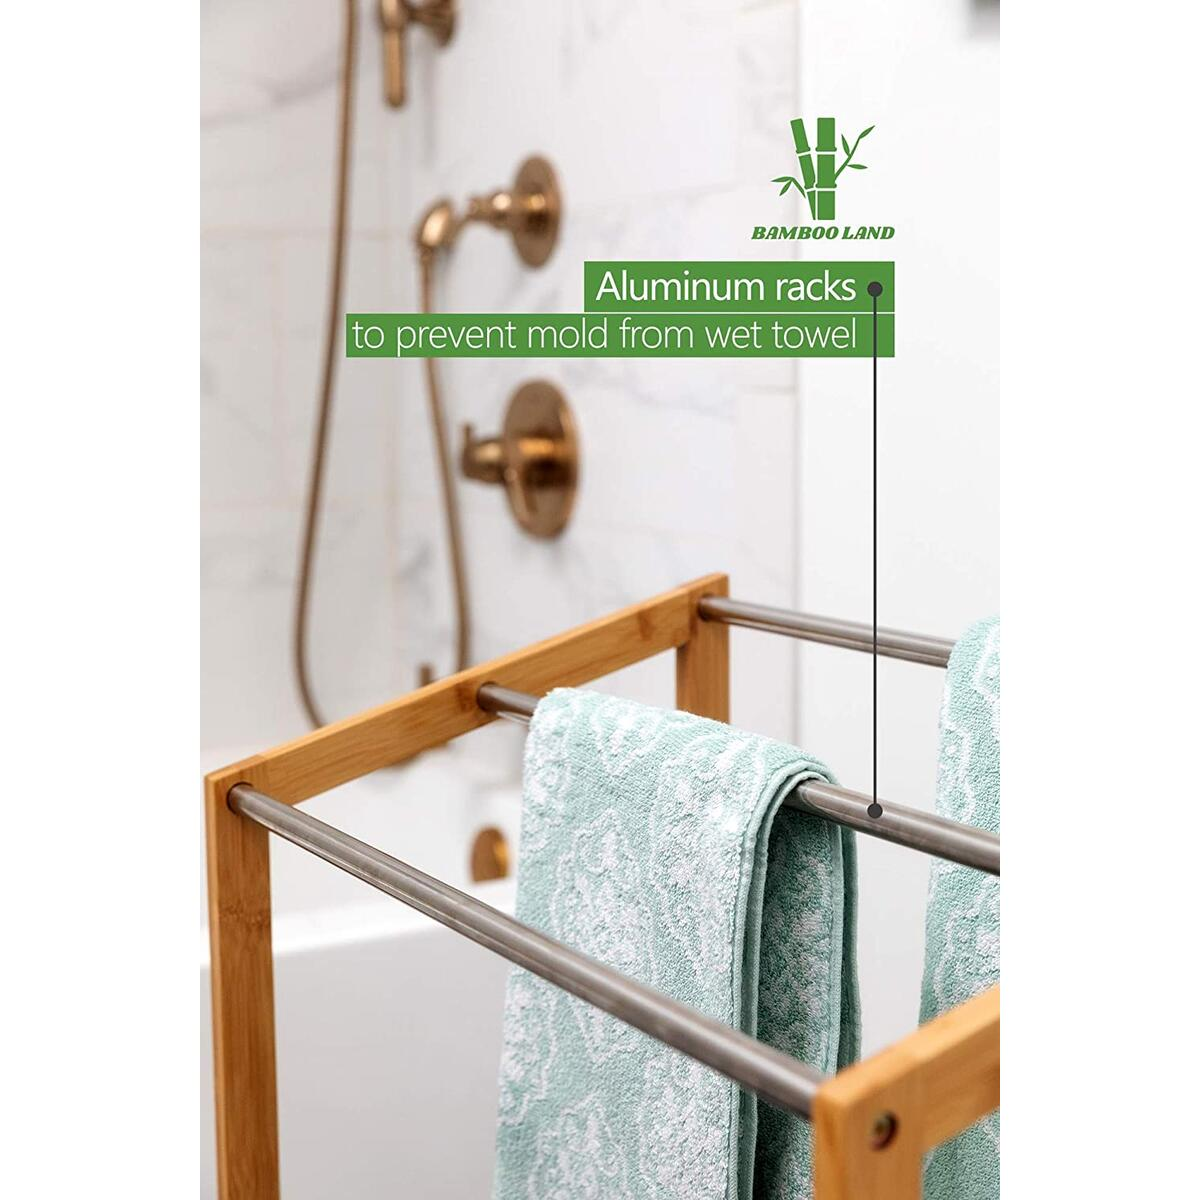 Bamboo Towel Racks for Bathroom, Free Standing Towel Racks for Bathroom, Pool Standing Towel Rack, Outdoor Towel Rack Wood, Pool Accessories Towel Holder, Gym Towel Stand, Kitchen Hand Towel Rack